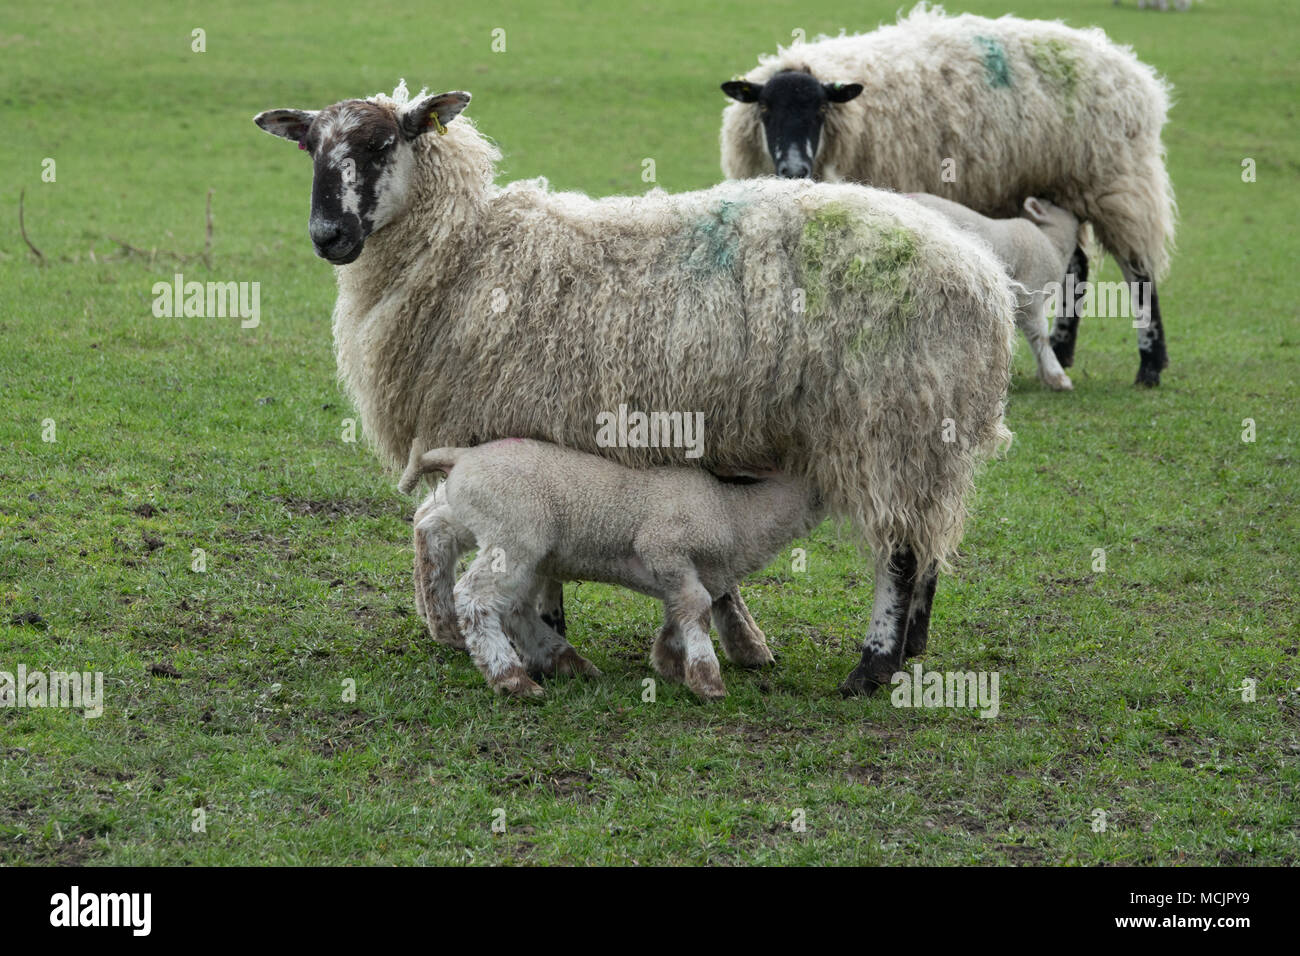 Derby United Kingdom April 2018 Ewe feeding her newborn lamb in a flooded muddy wet field in the Derbyshire countryside on a wet Spring day. - Stock Image